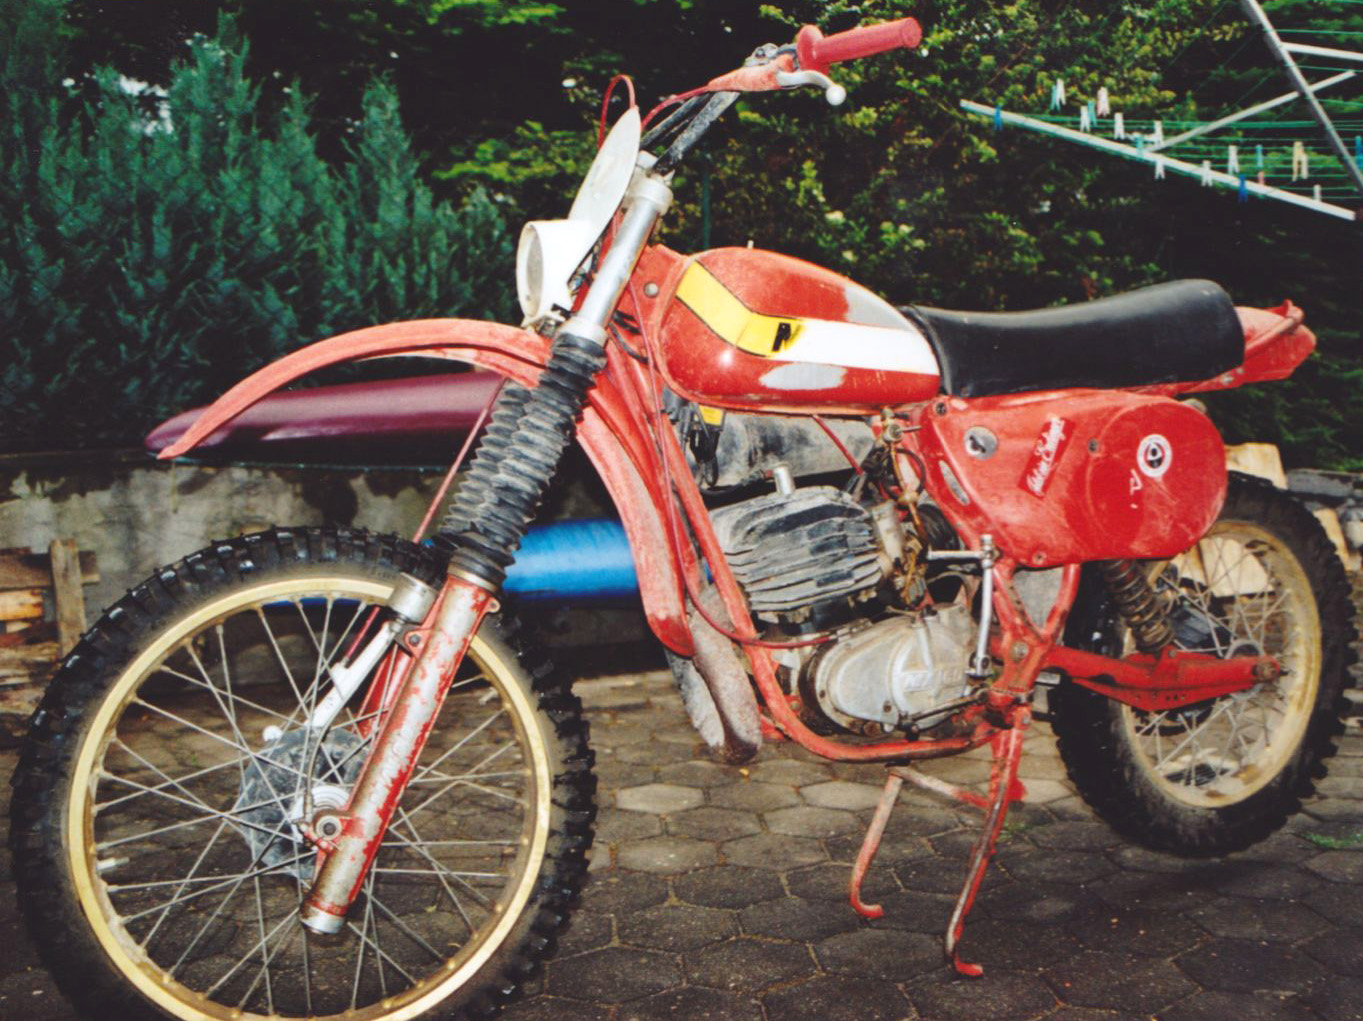 Maico MD 250/6 1976 images #102029